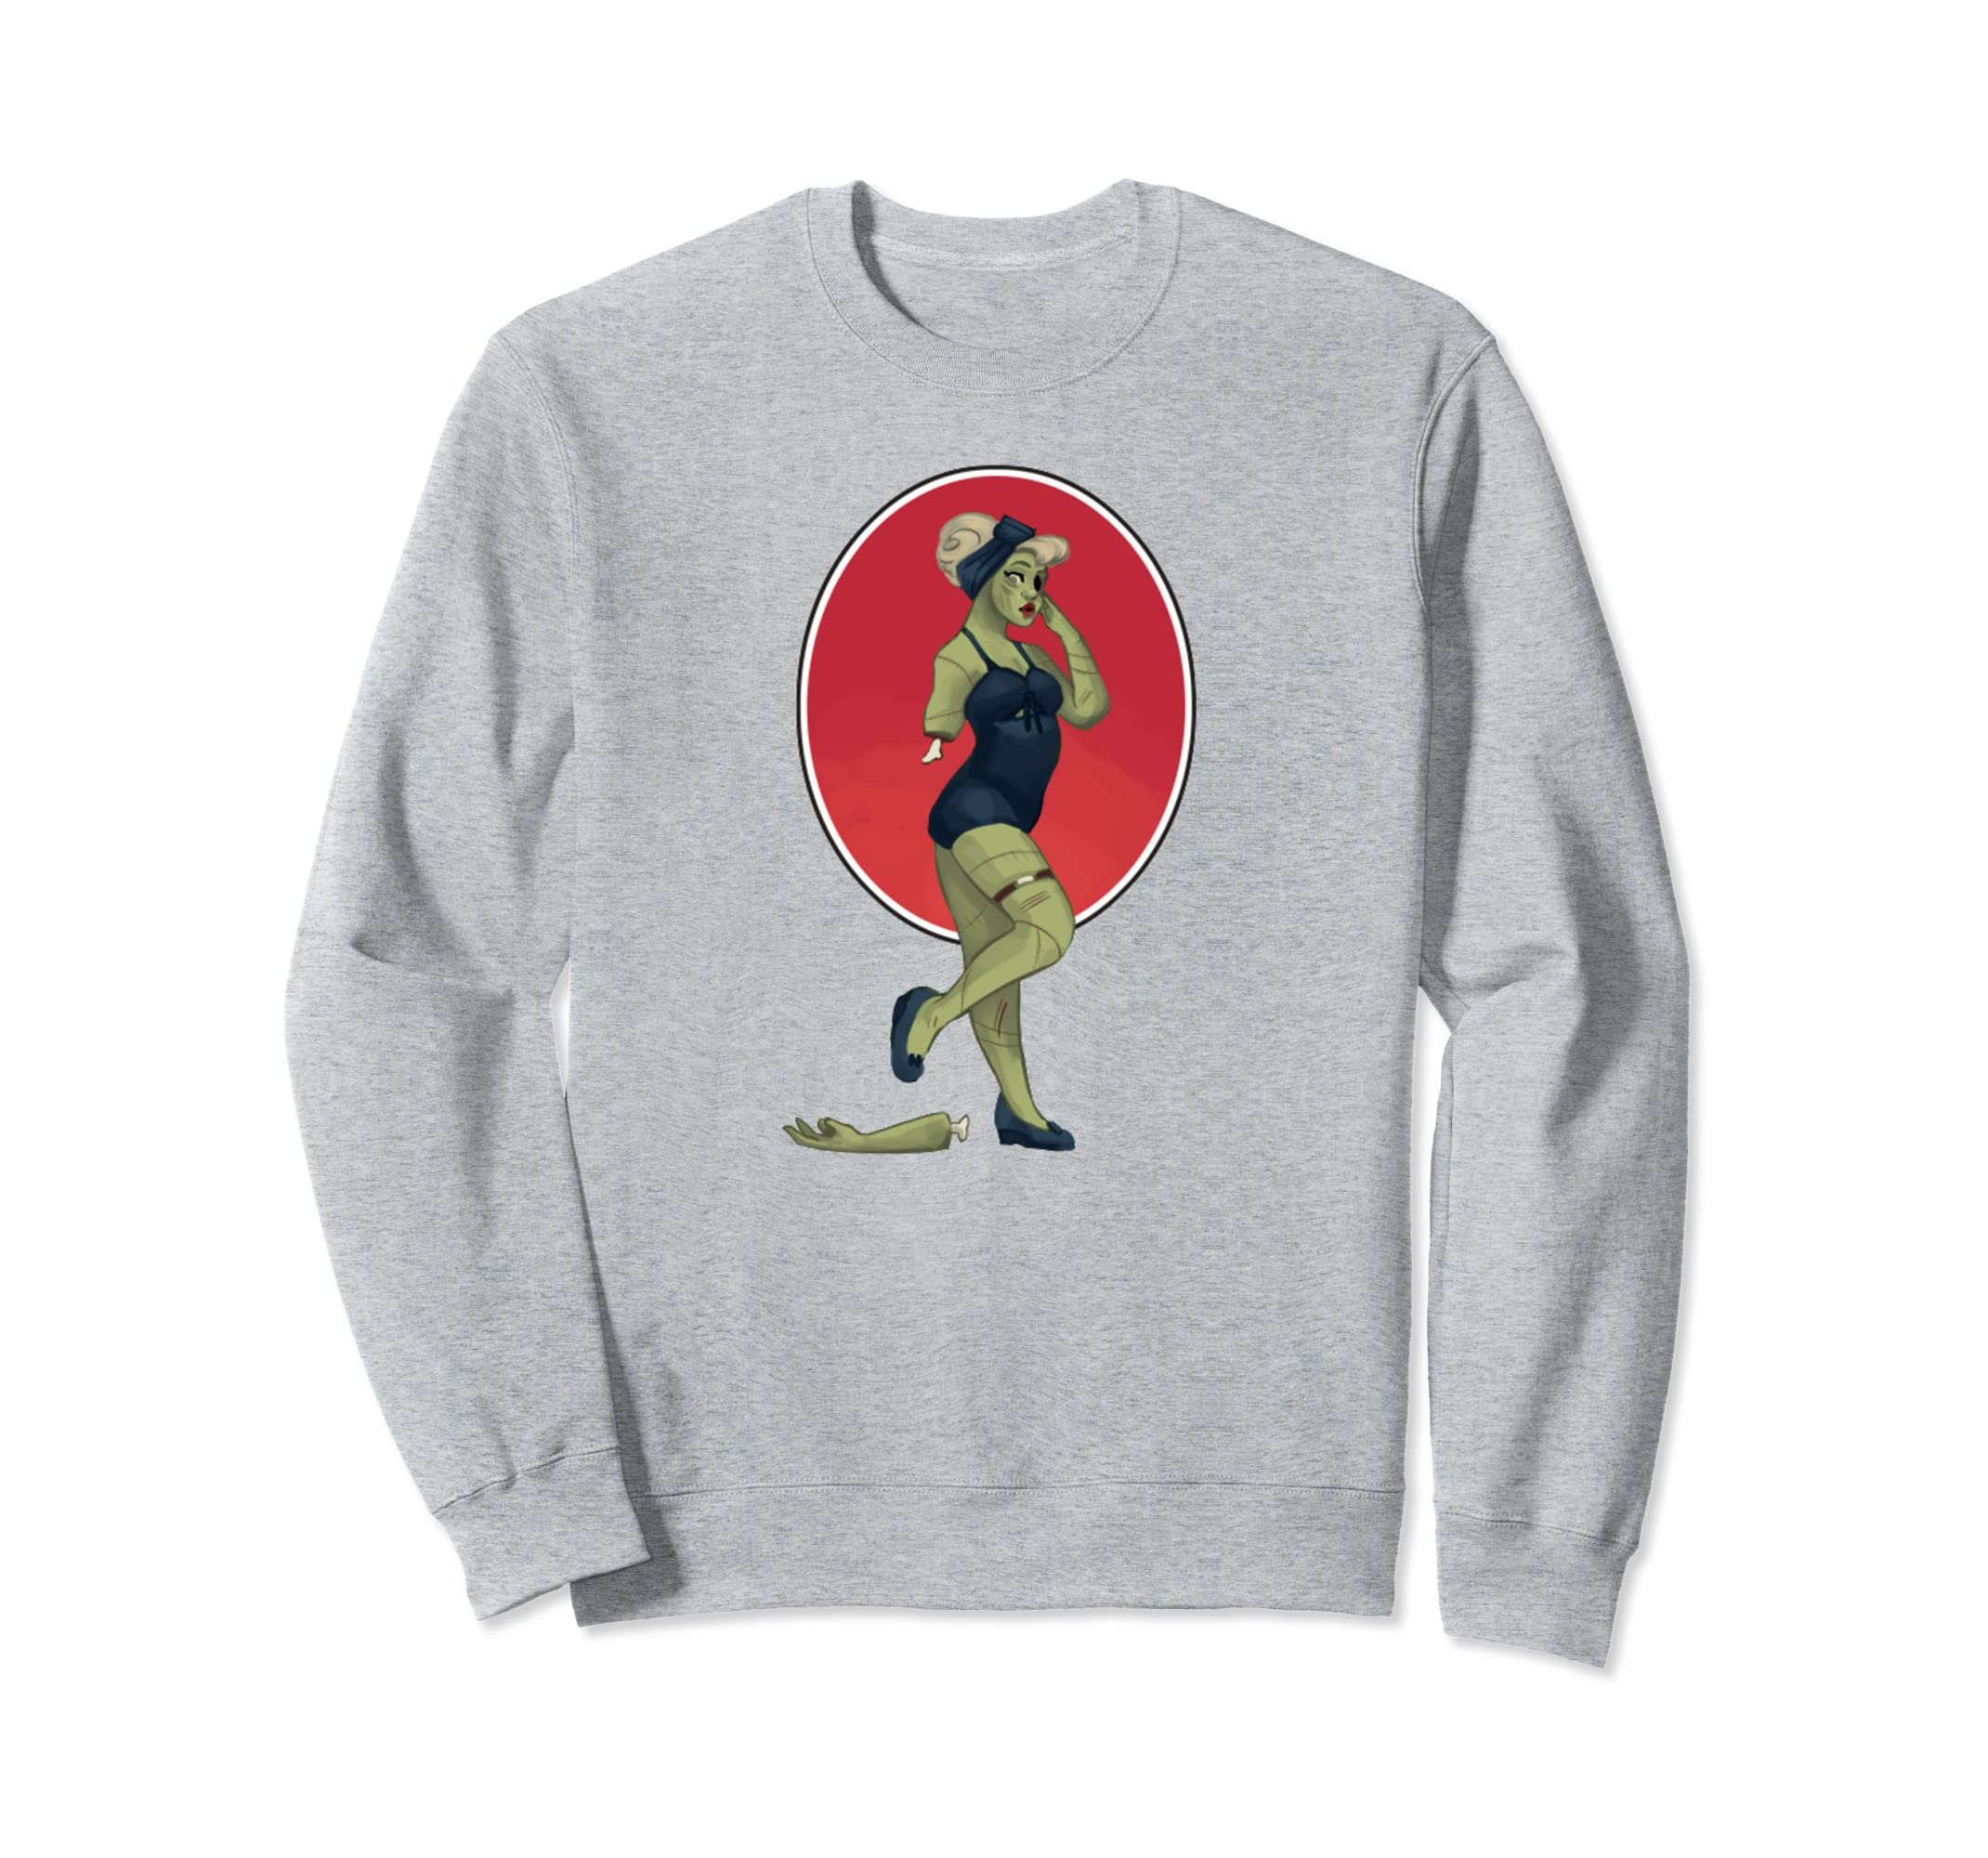 Zombie Pin Up Girl Halloween Sweatshirt-ANZ